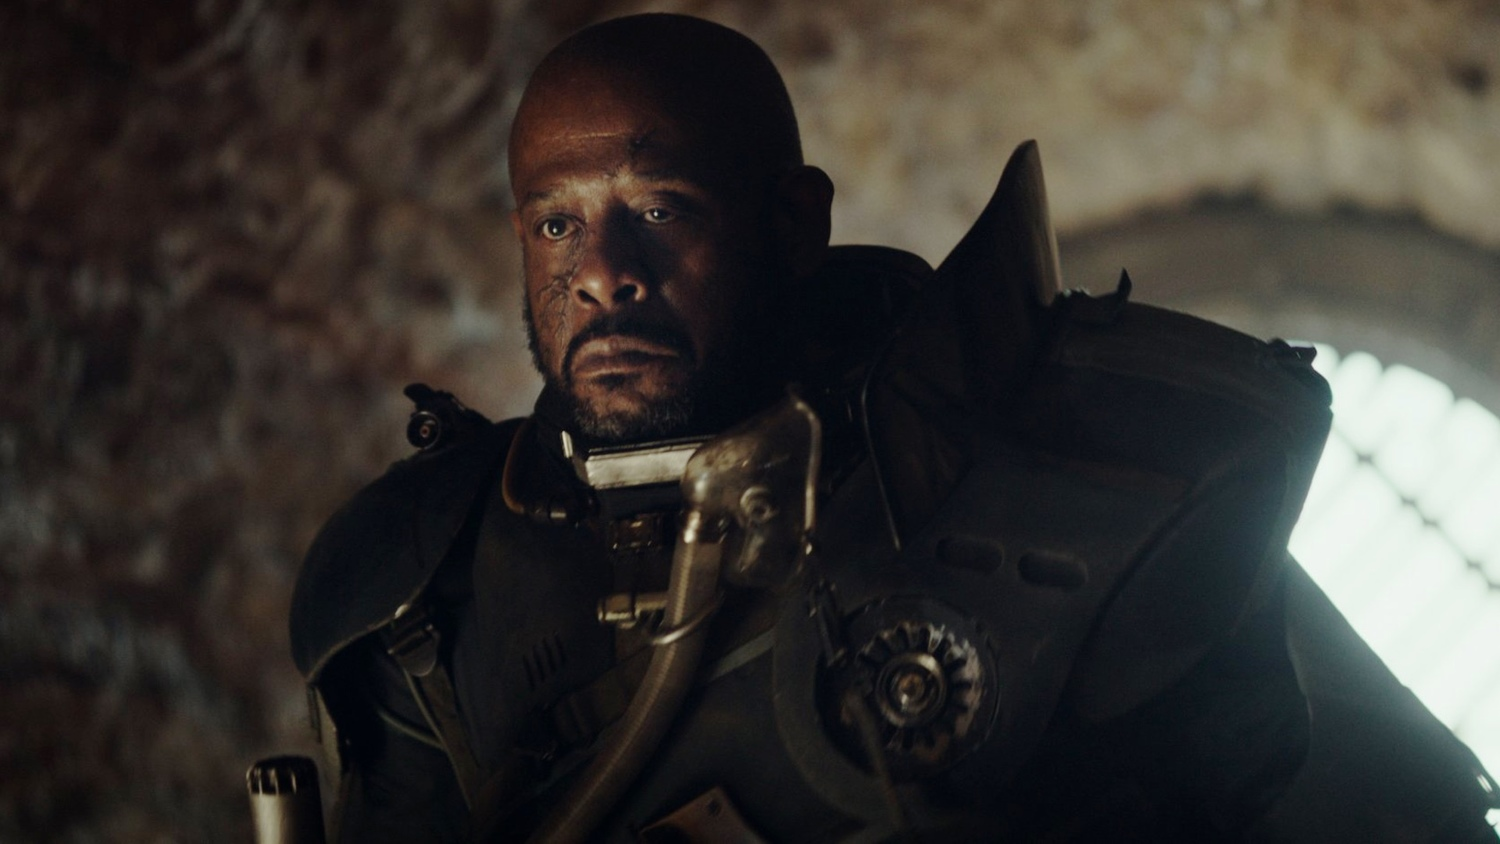 ROGUE ONE's Saw Gerrera Character Was Originally in the Live